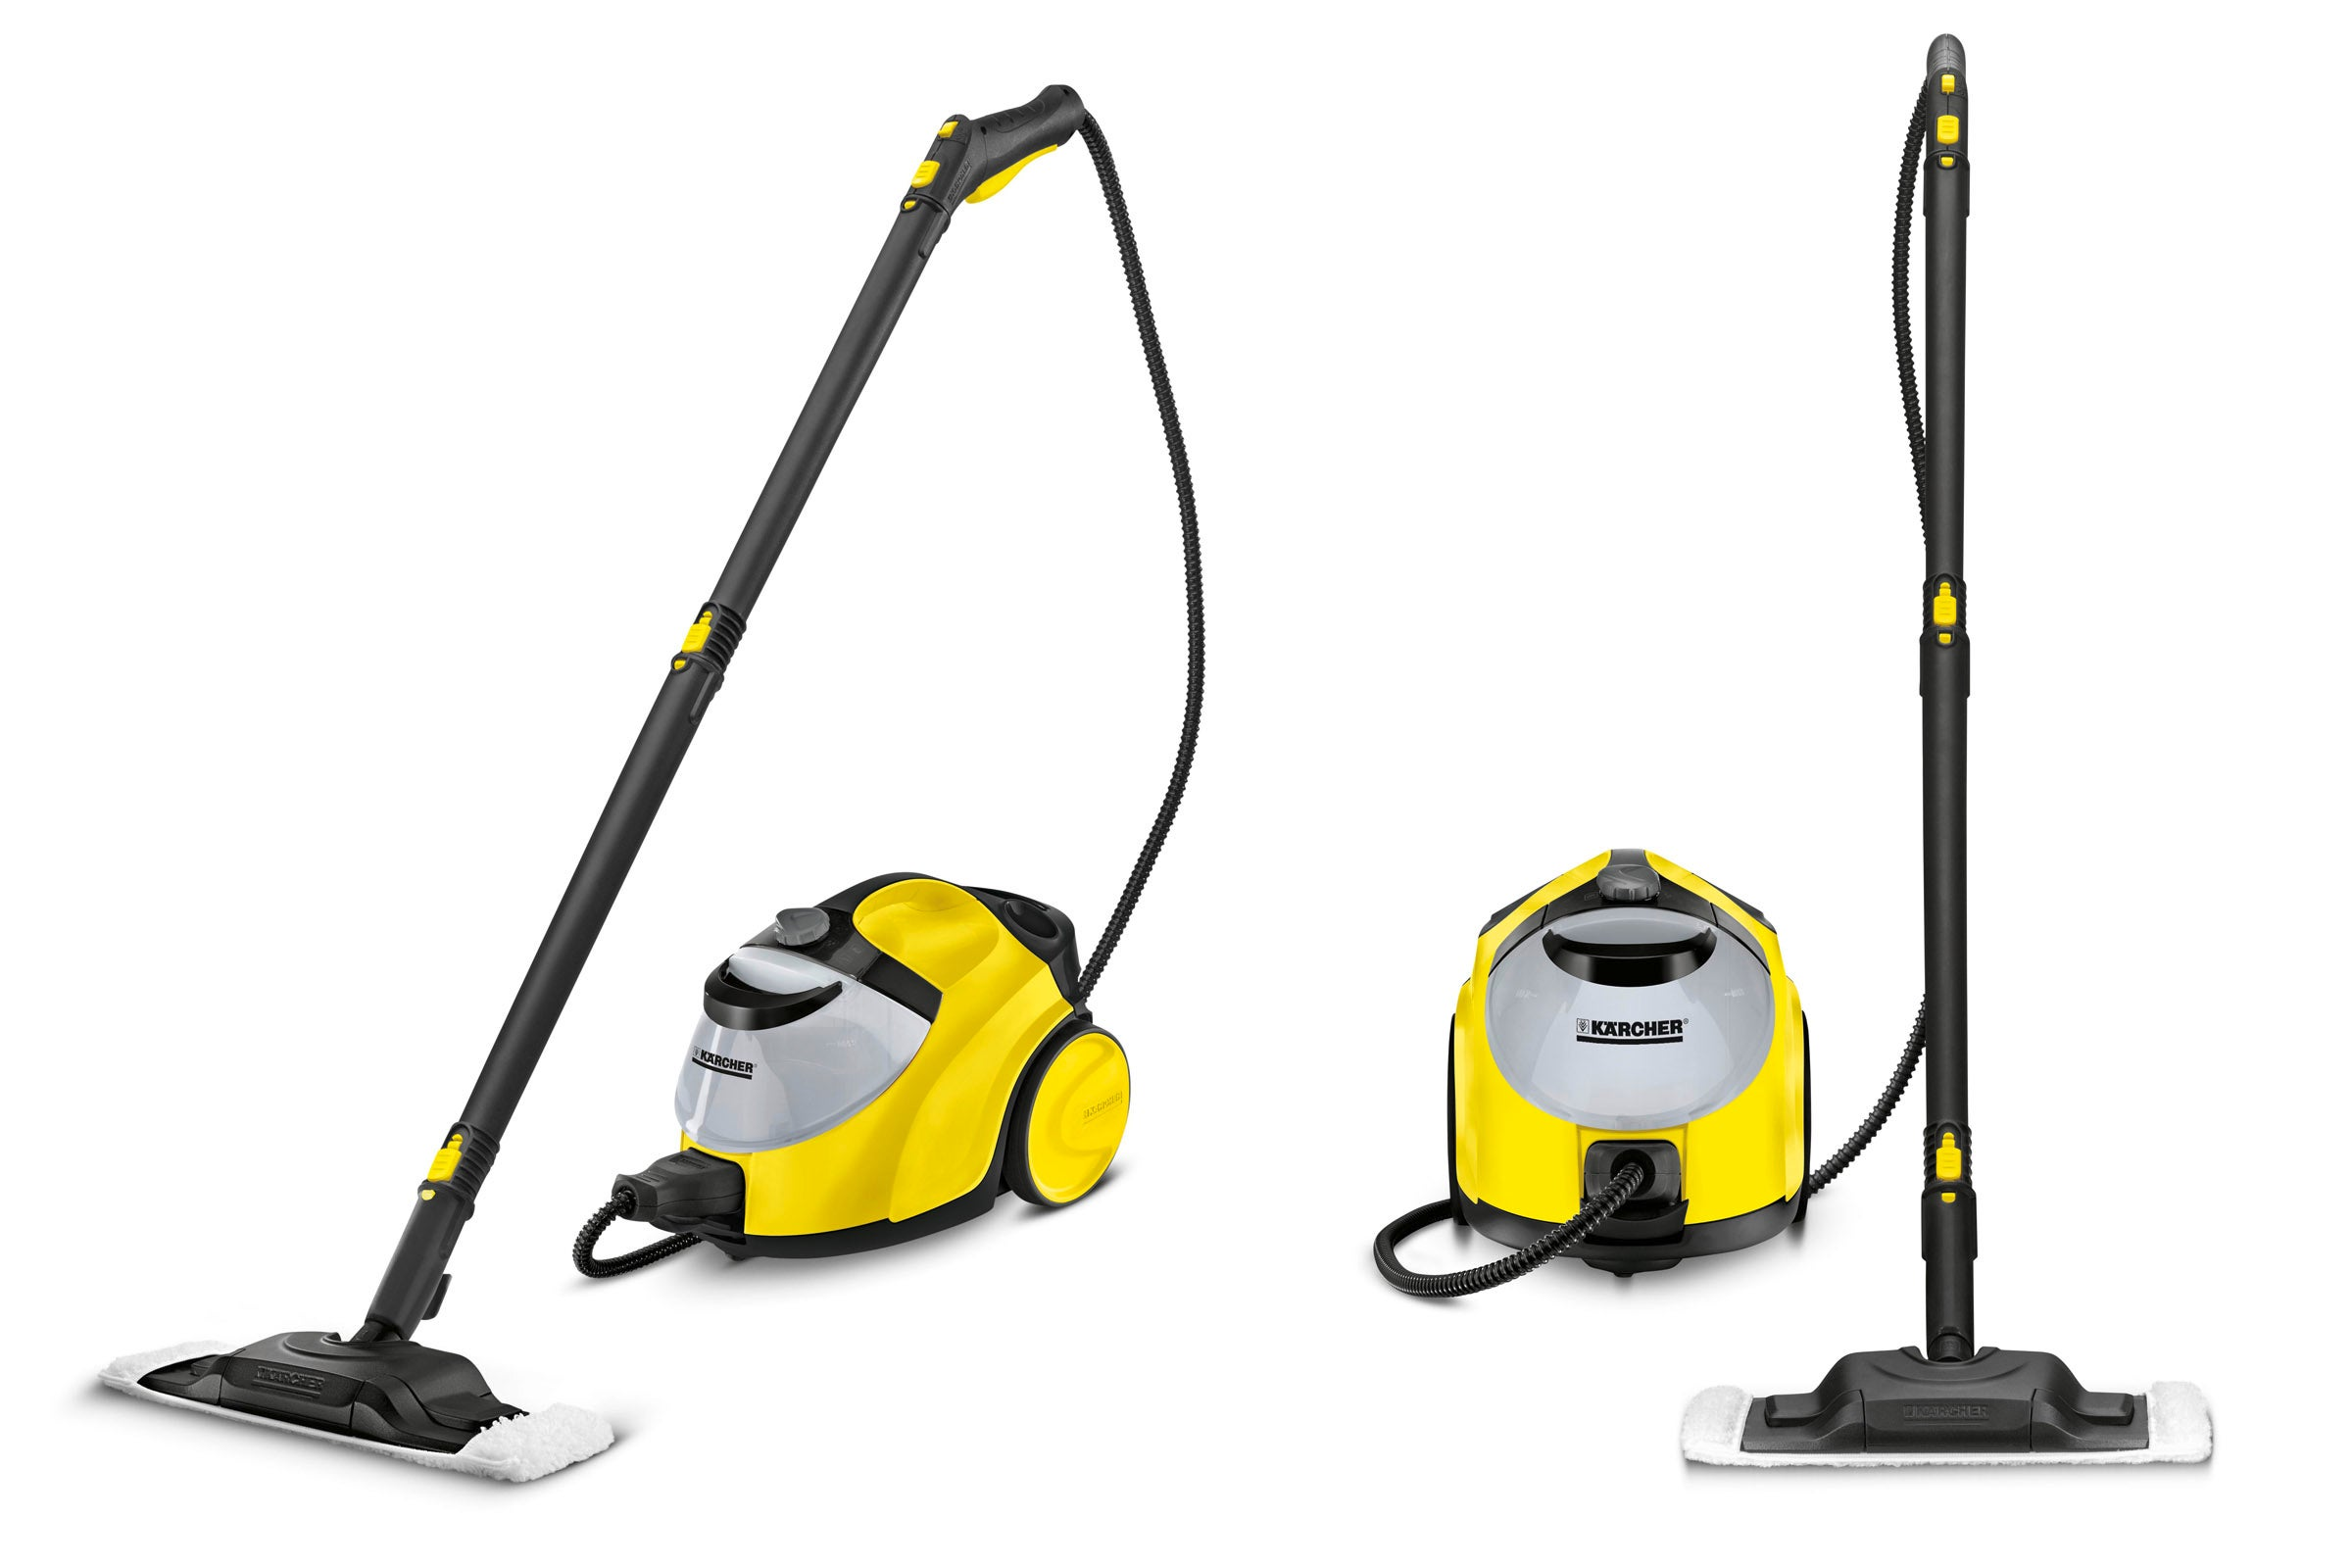 Karcher SC3 All-in-One Steam Cleaner Review